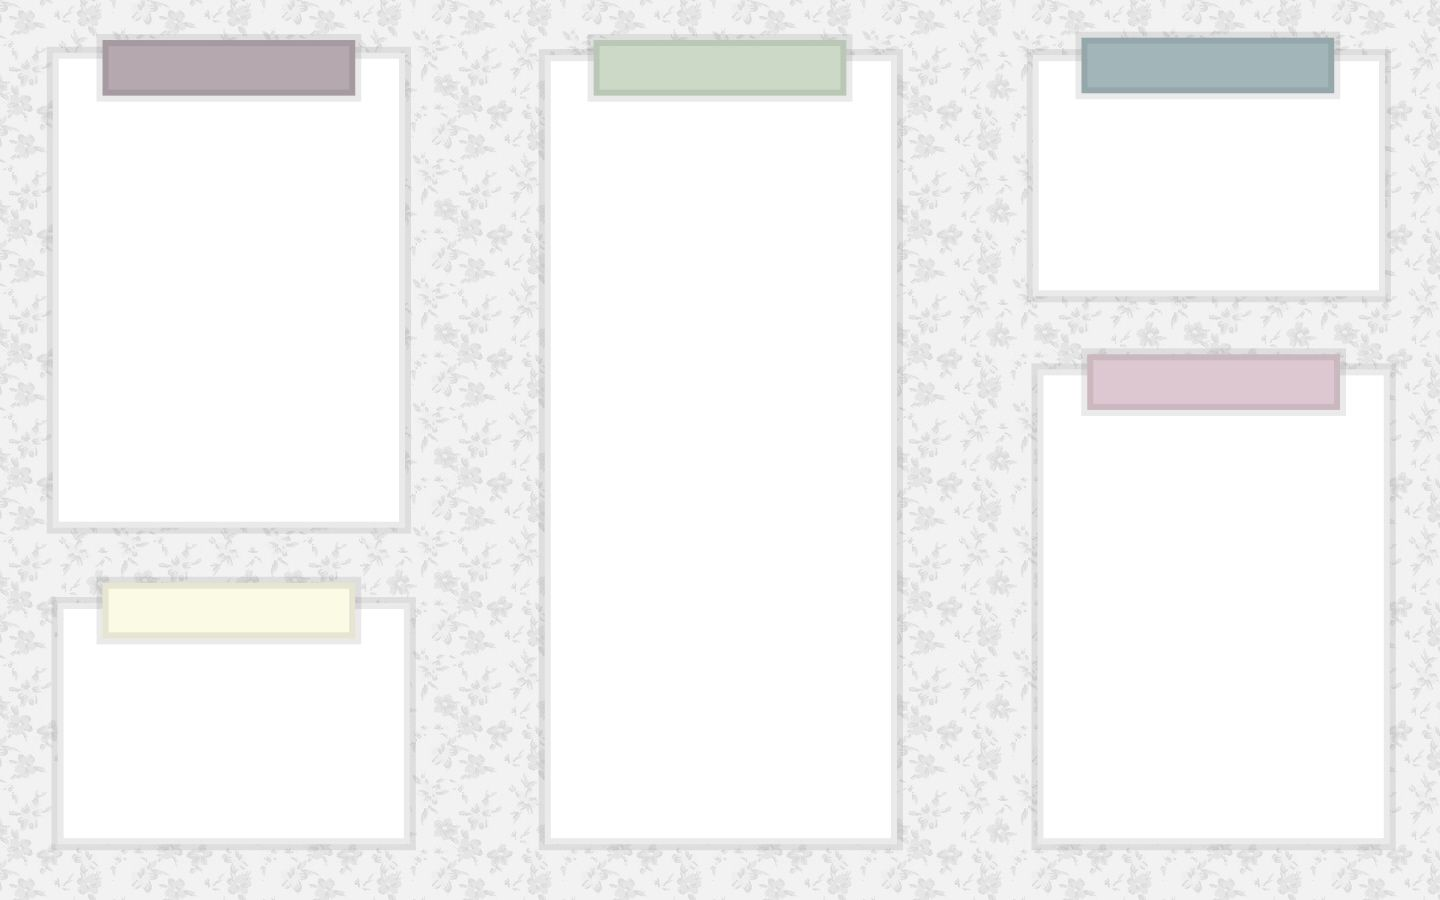 Ohh another one floral and pastels desktop pinterest - Desktop organizer wallpaper ...